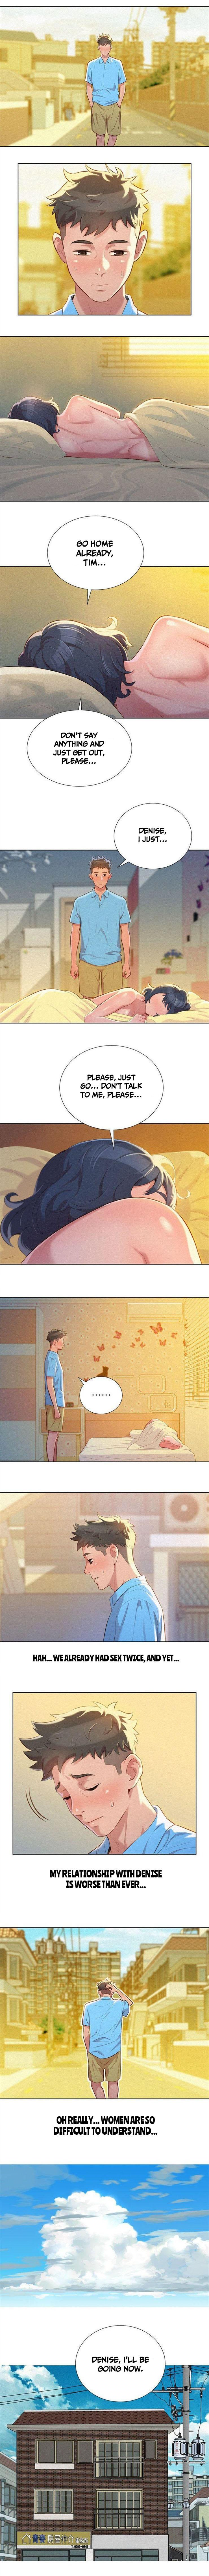 What do you Take me For? Ch.40/? 310